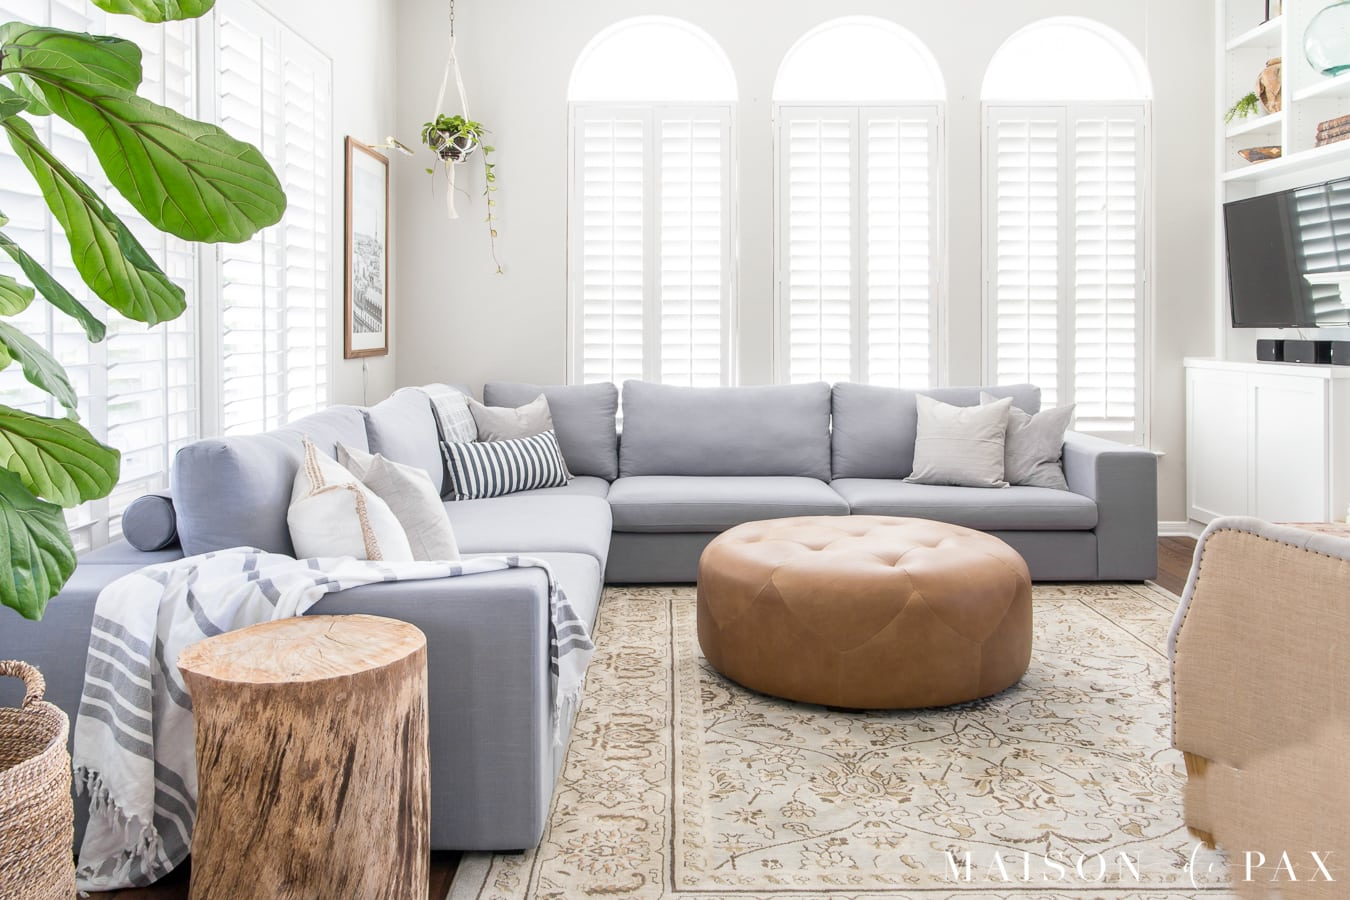 Designing a Small Living Room with a Large Sectional   Maison de Pax This light bright living room is anchored by a large blue gray sectional  and accented with